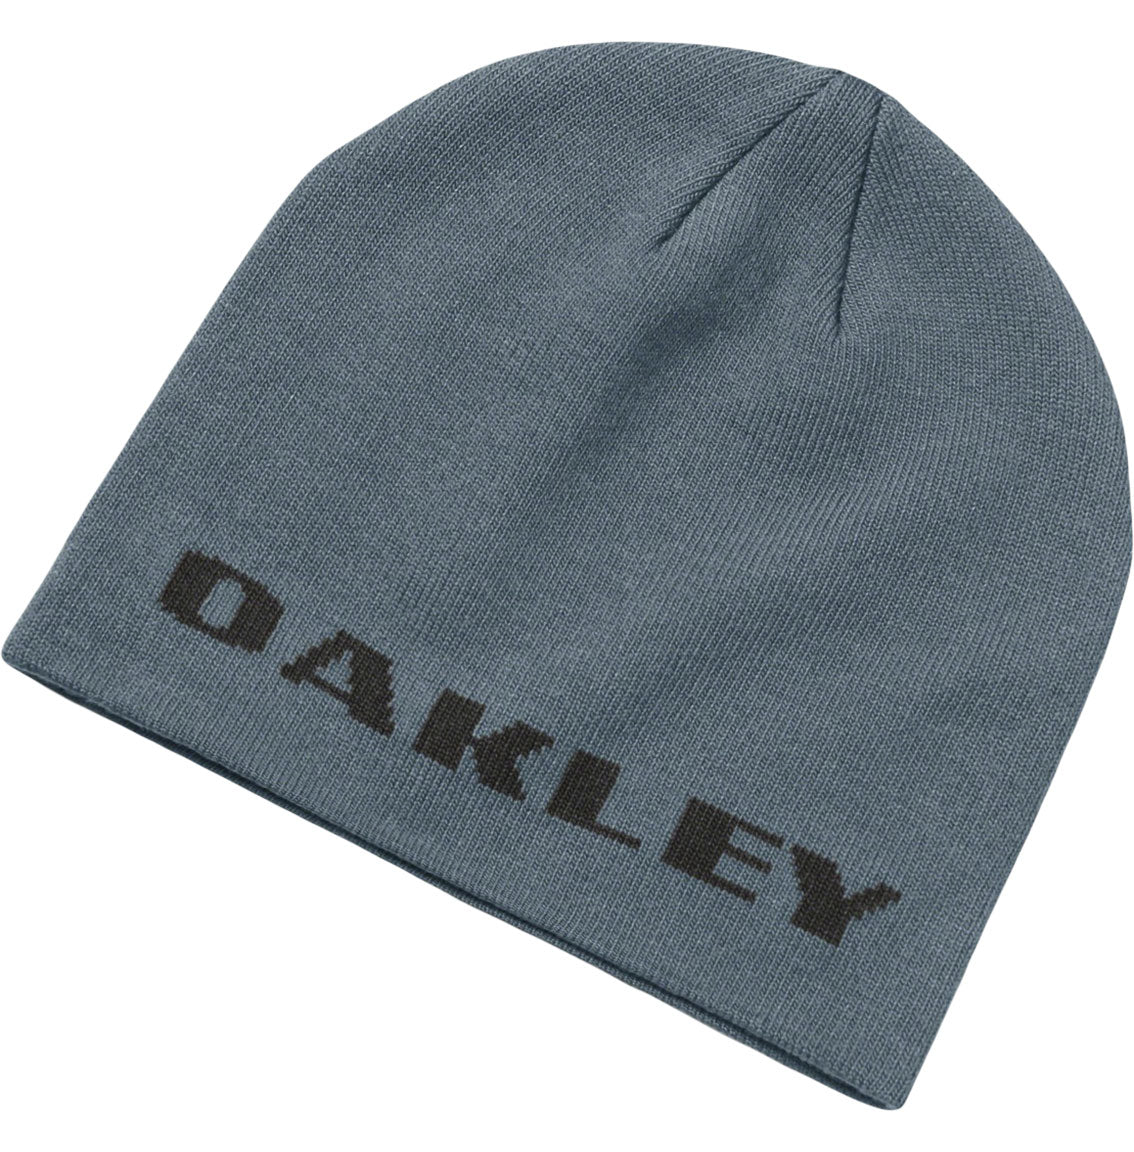 Oakley Fall 2017 Accessories | Mens Lifestyle Beanies